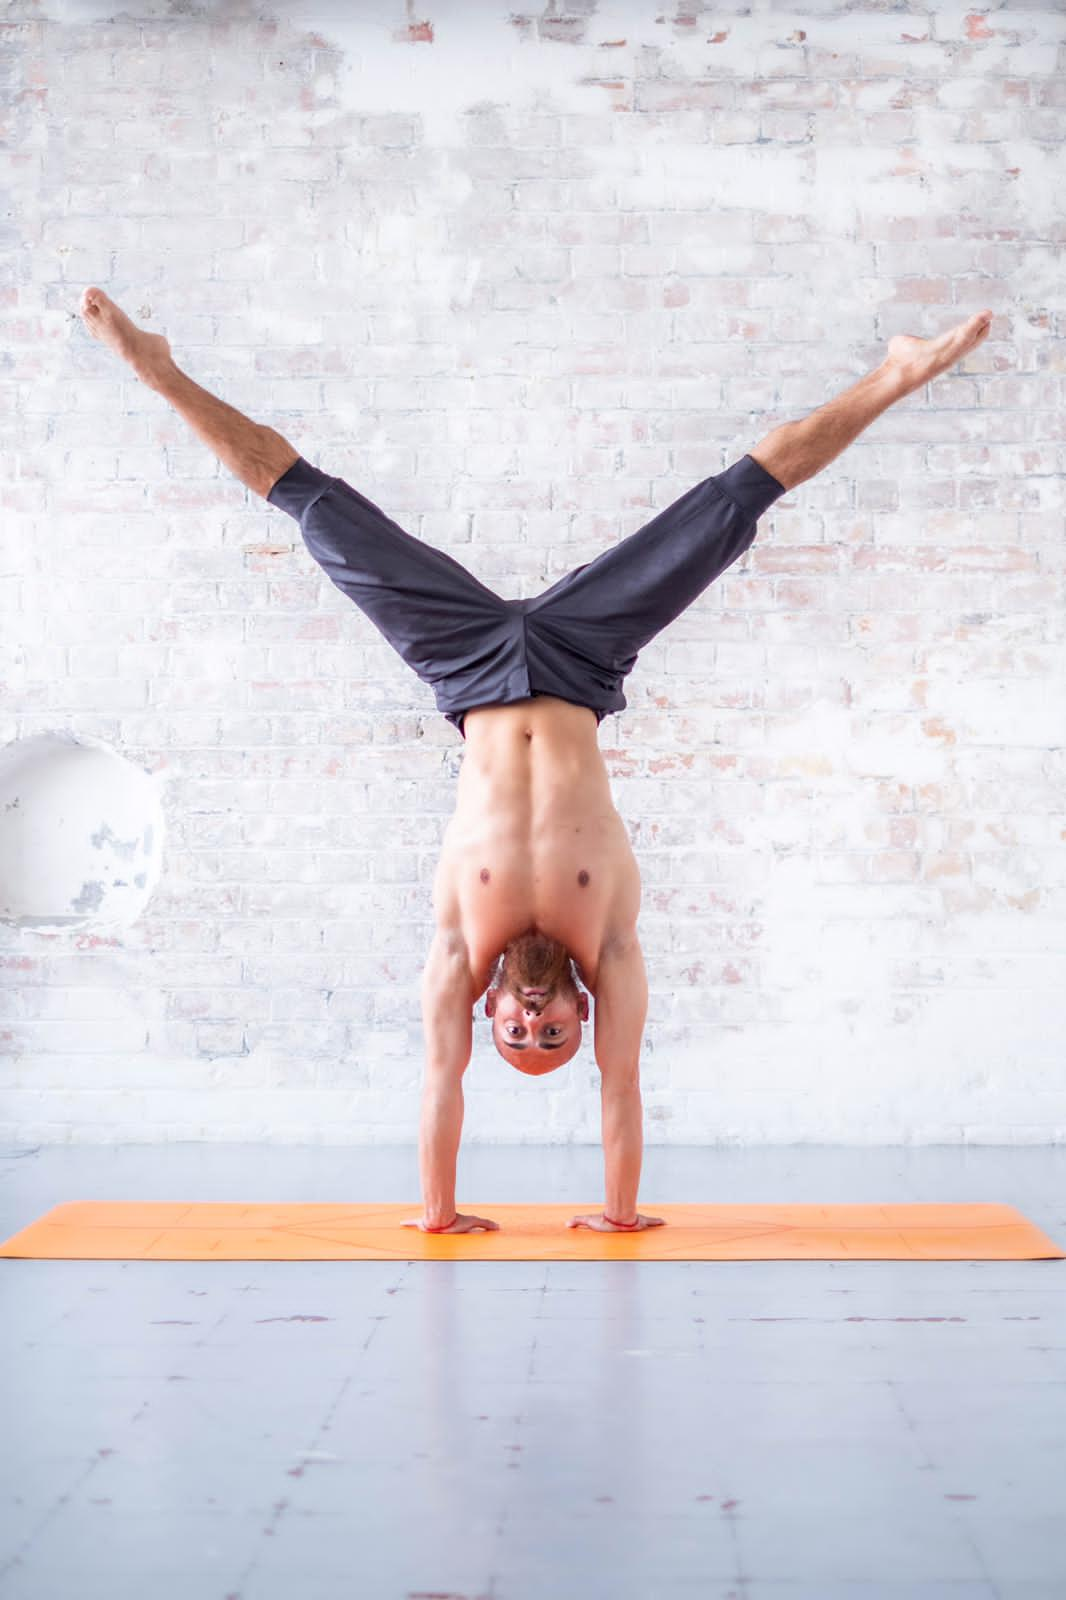 Finding Flight - Handstand Workshop with David Pearce - Workshop at Yoga House, London - Catford and Lee